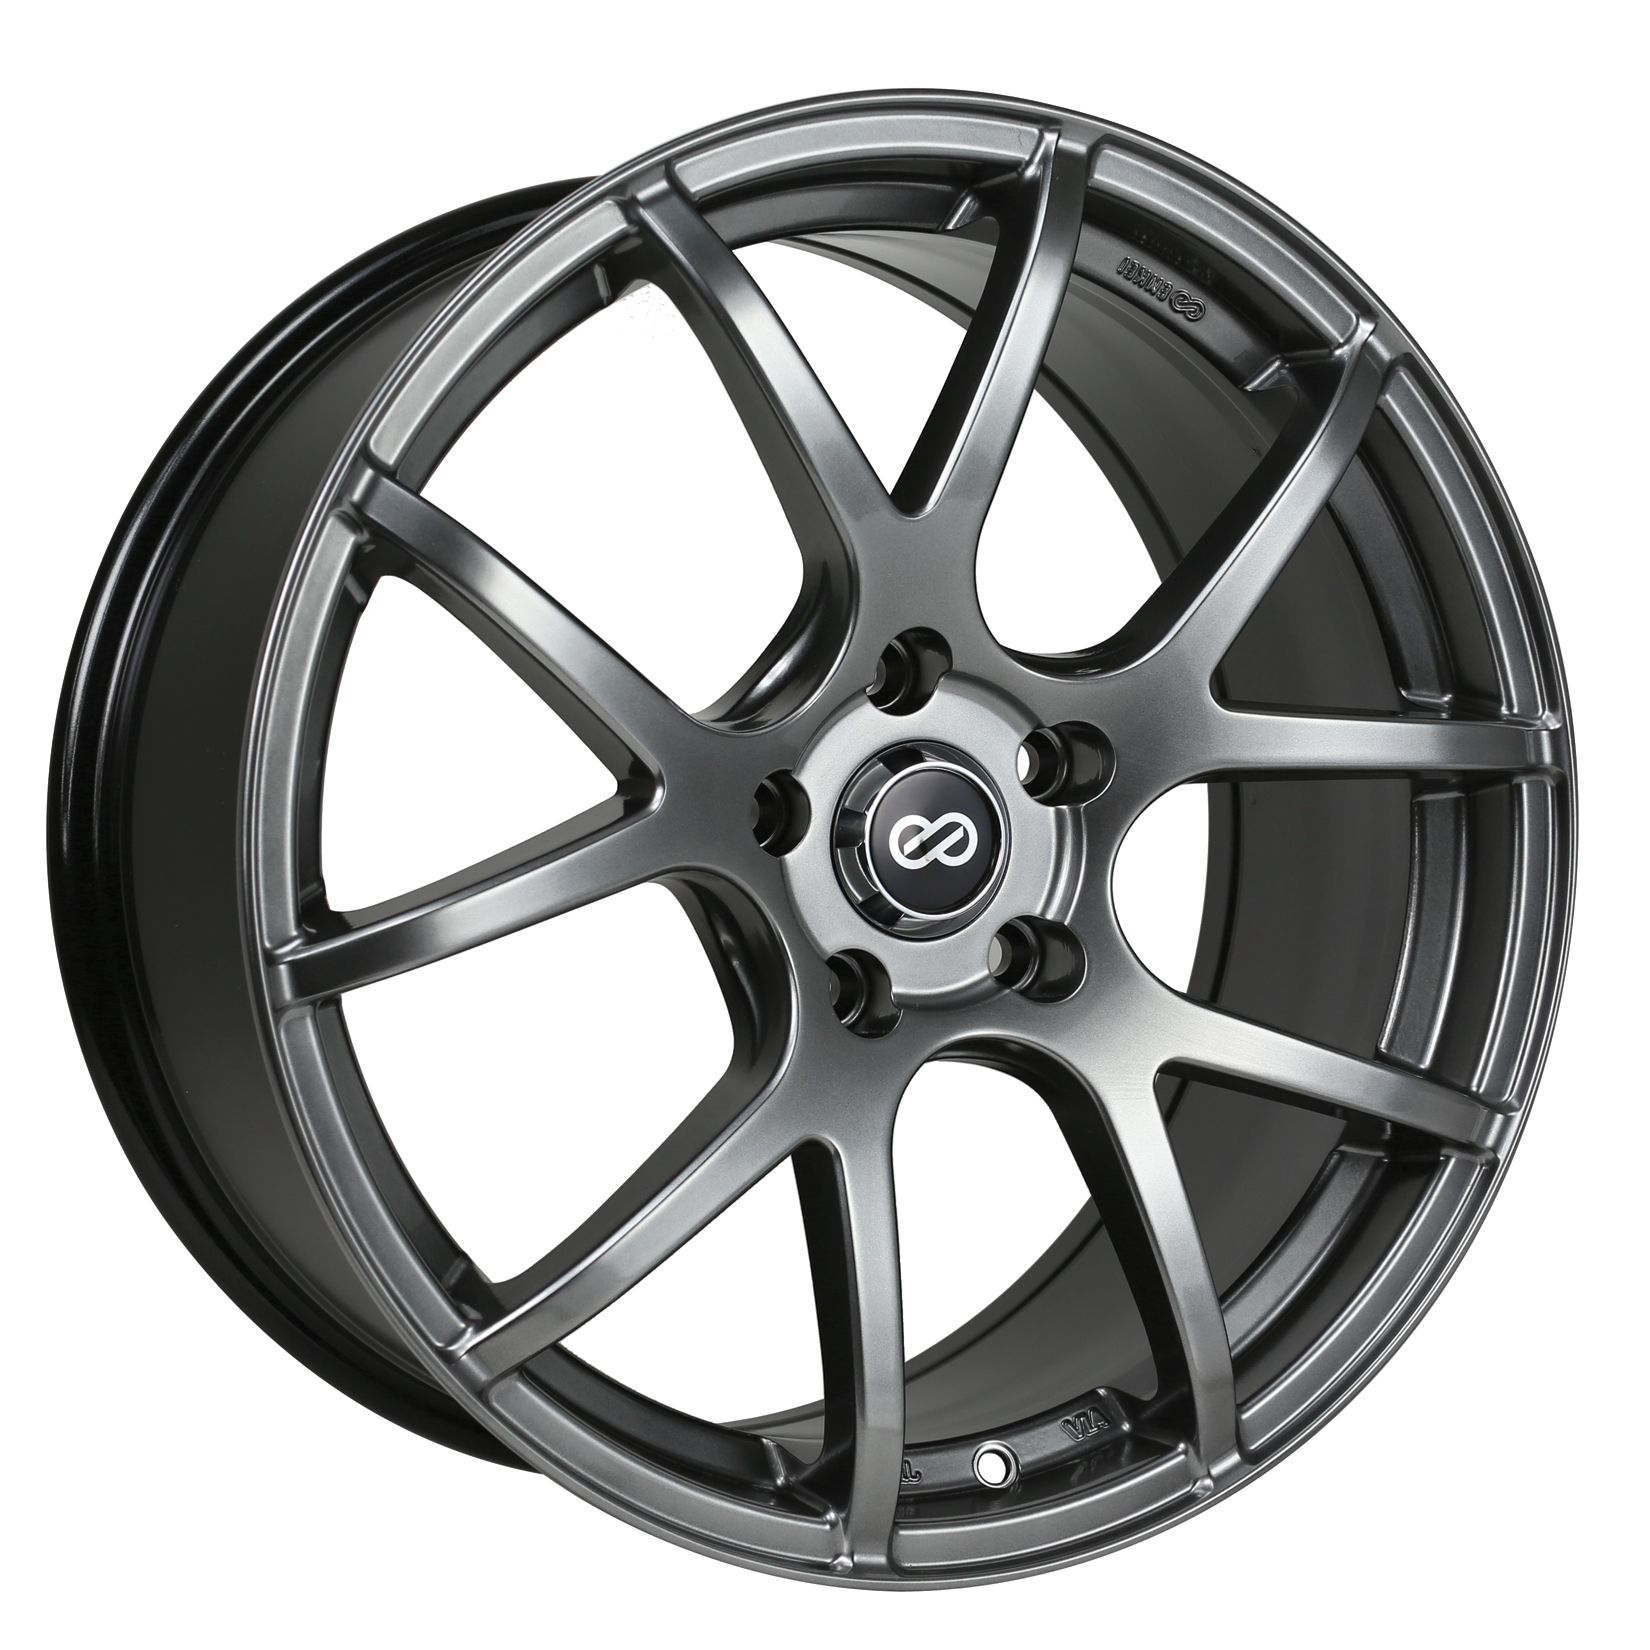 Enkei M52 Hyper Black Wheel: 16x7 +45